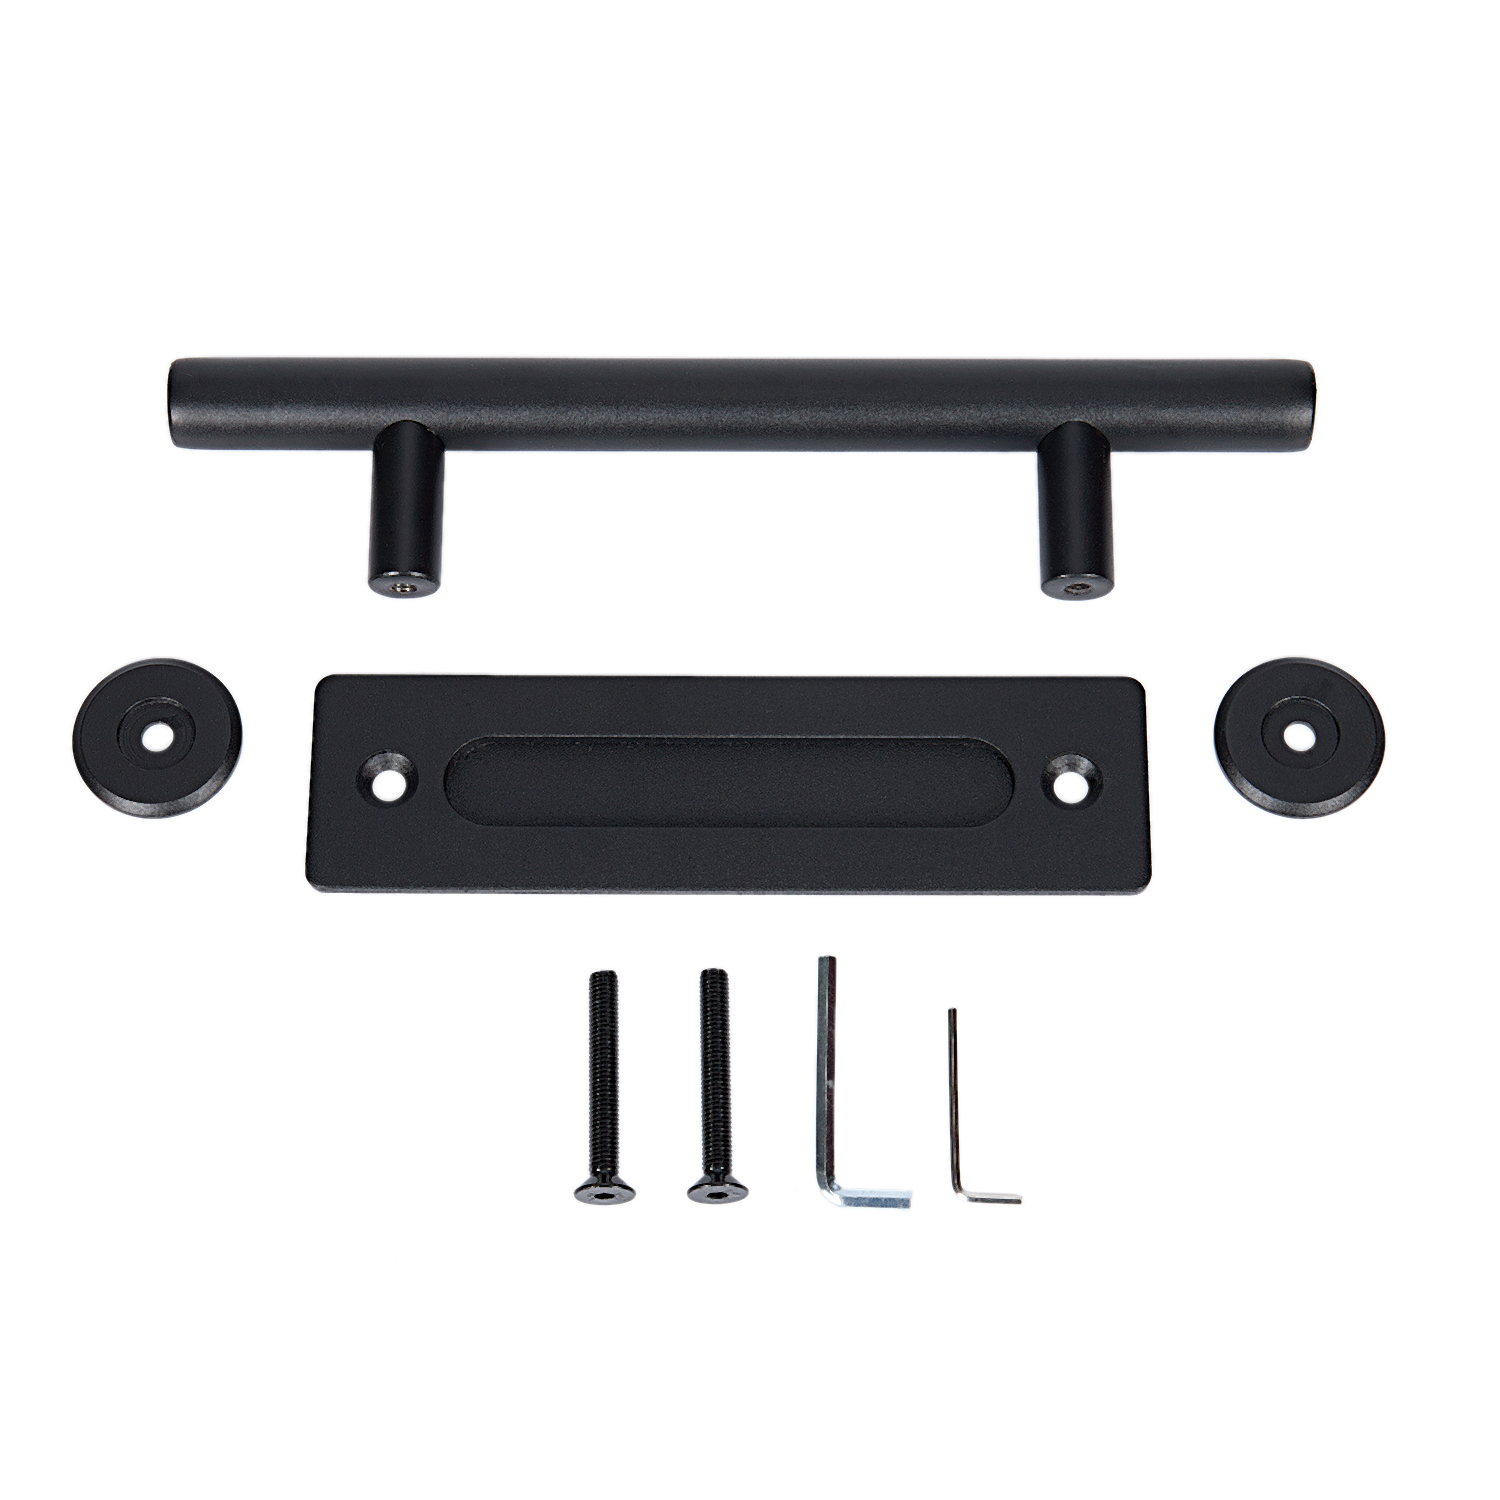 BIFI-Sliding door fittings Barn door hardware sliding door sliding door double-sided handle 12 inch,BlackBIFI-Sliding door fittings Barn door hardware sliding door sliding door double-sided handle 12 inch,Black